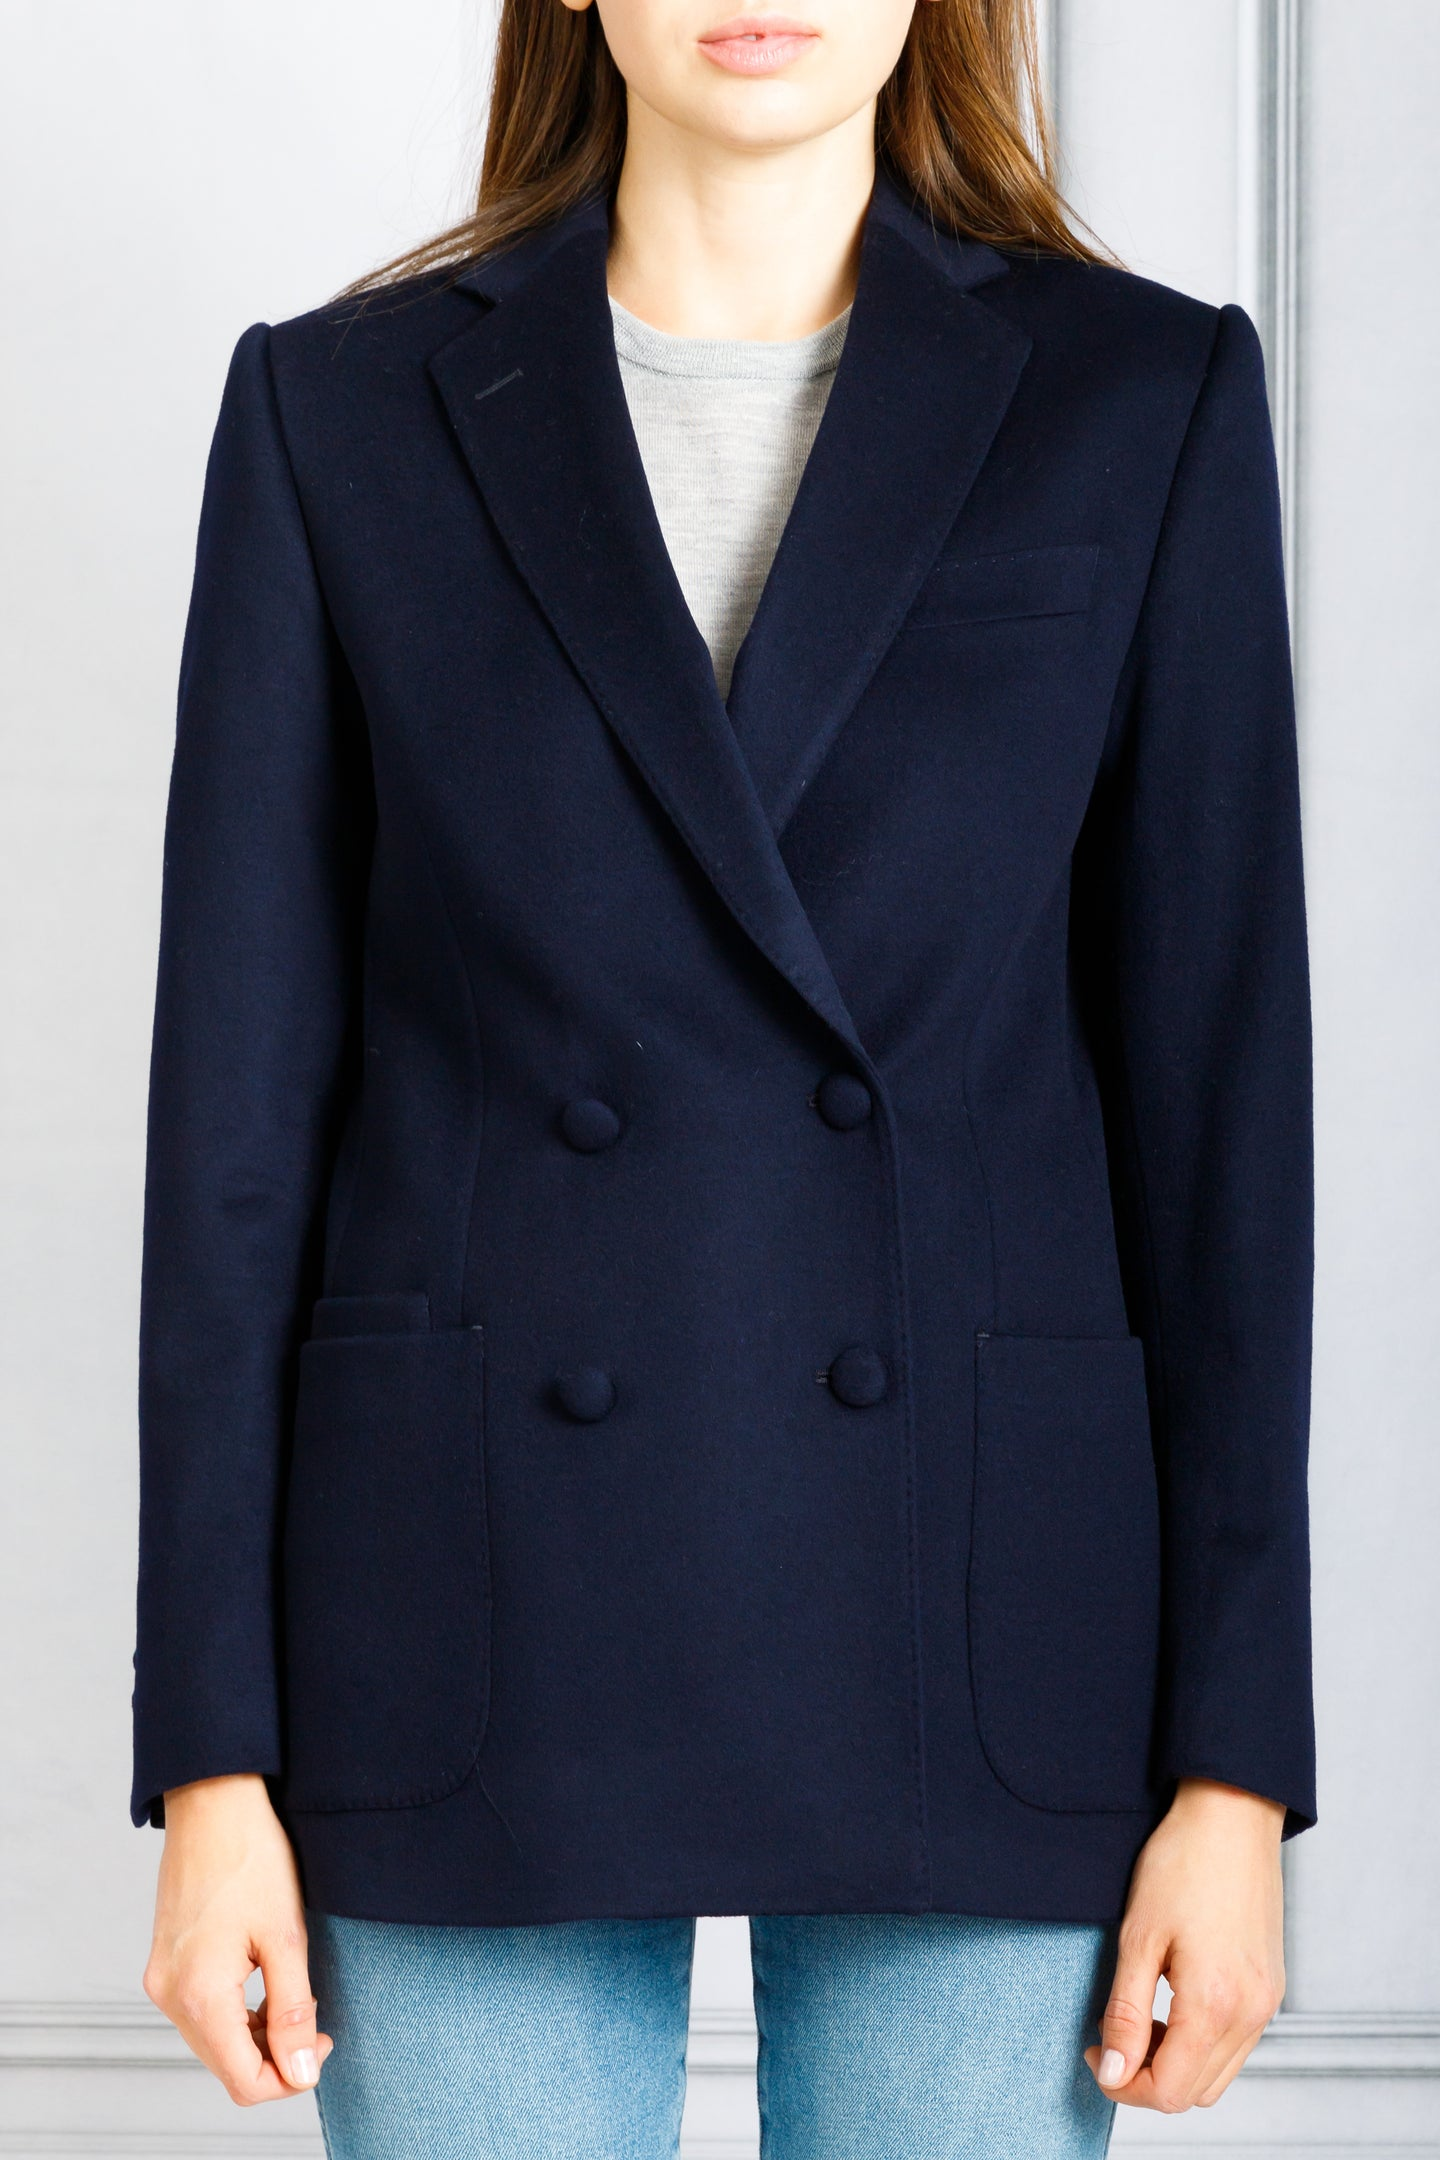 Mathilde Double Breasted Classic Blazer - Navy